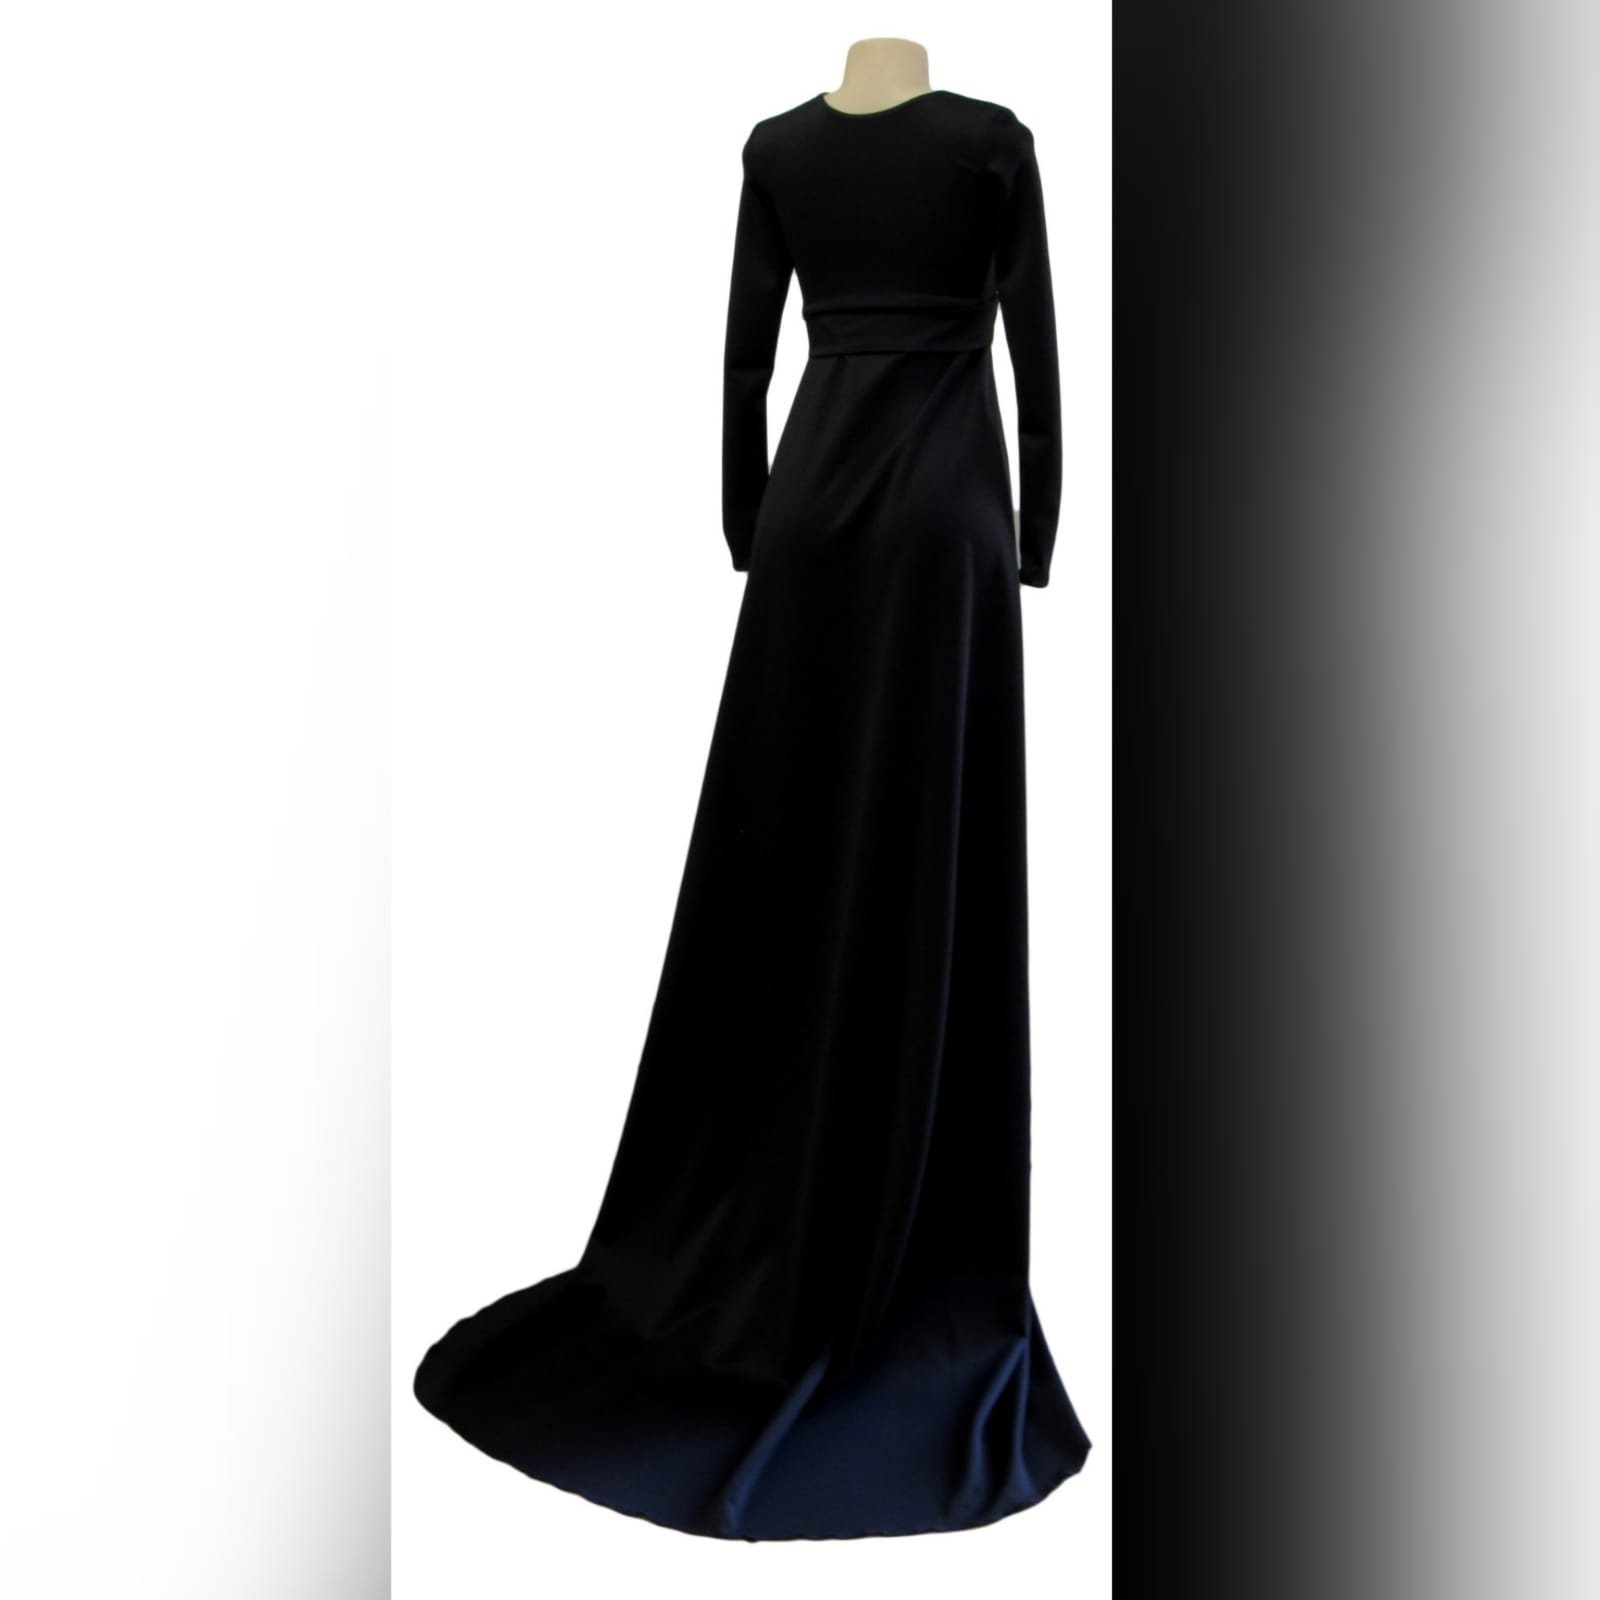 Long black a-line formal dress 4 long black a-line formal dress with an illusion v neckline, long sleeves a slit and a train.